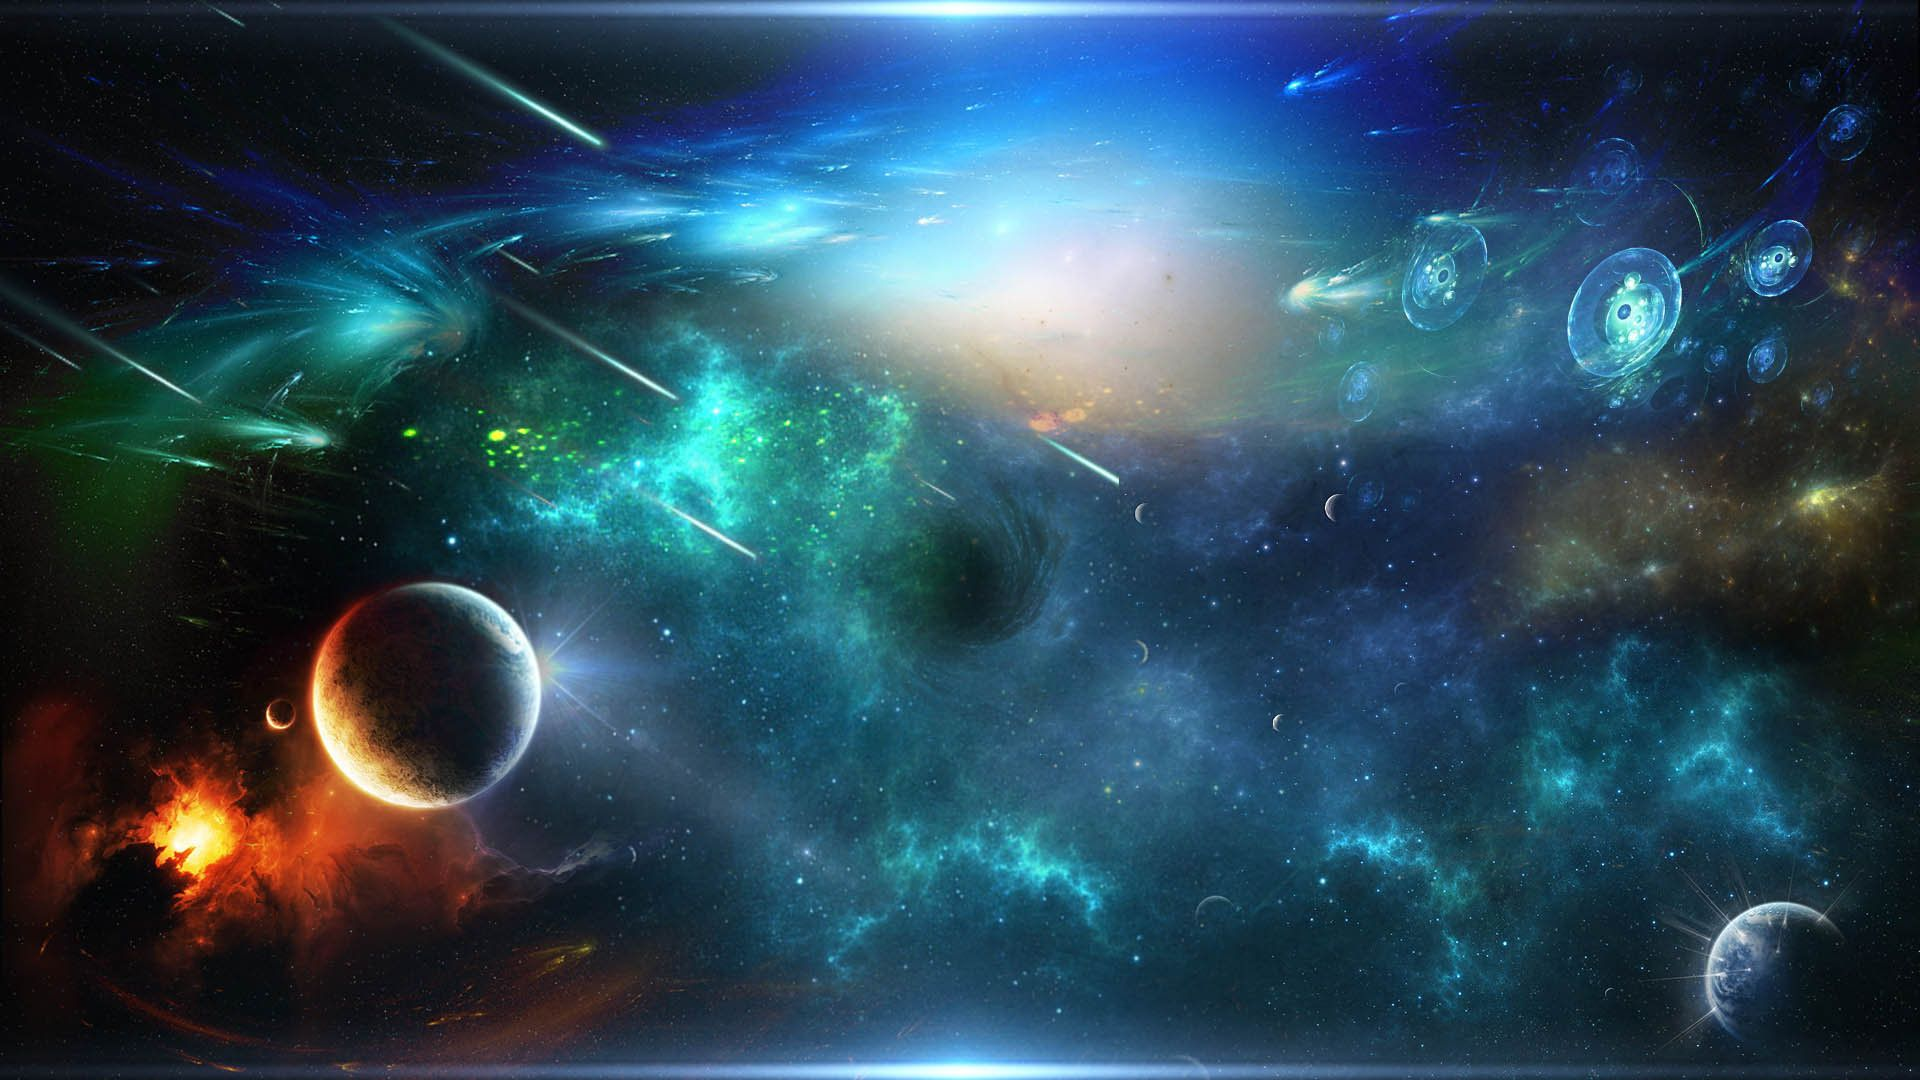 Amazing Space 1 Amazing Spaces Outer Space Pictures Space Pictures